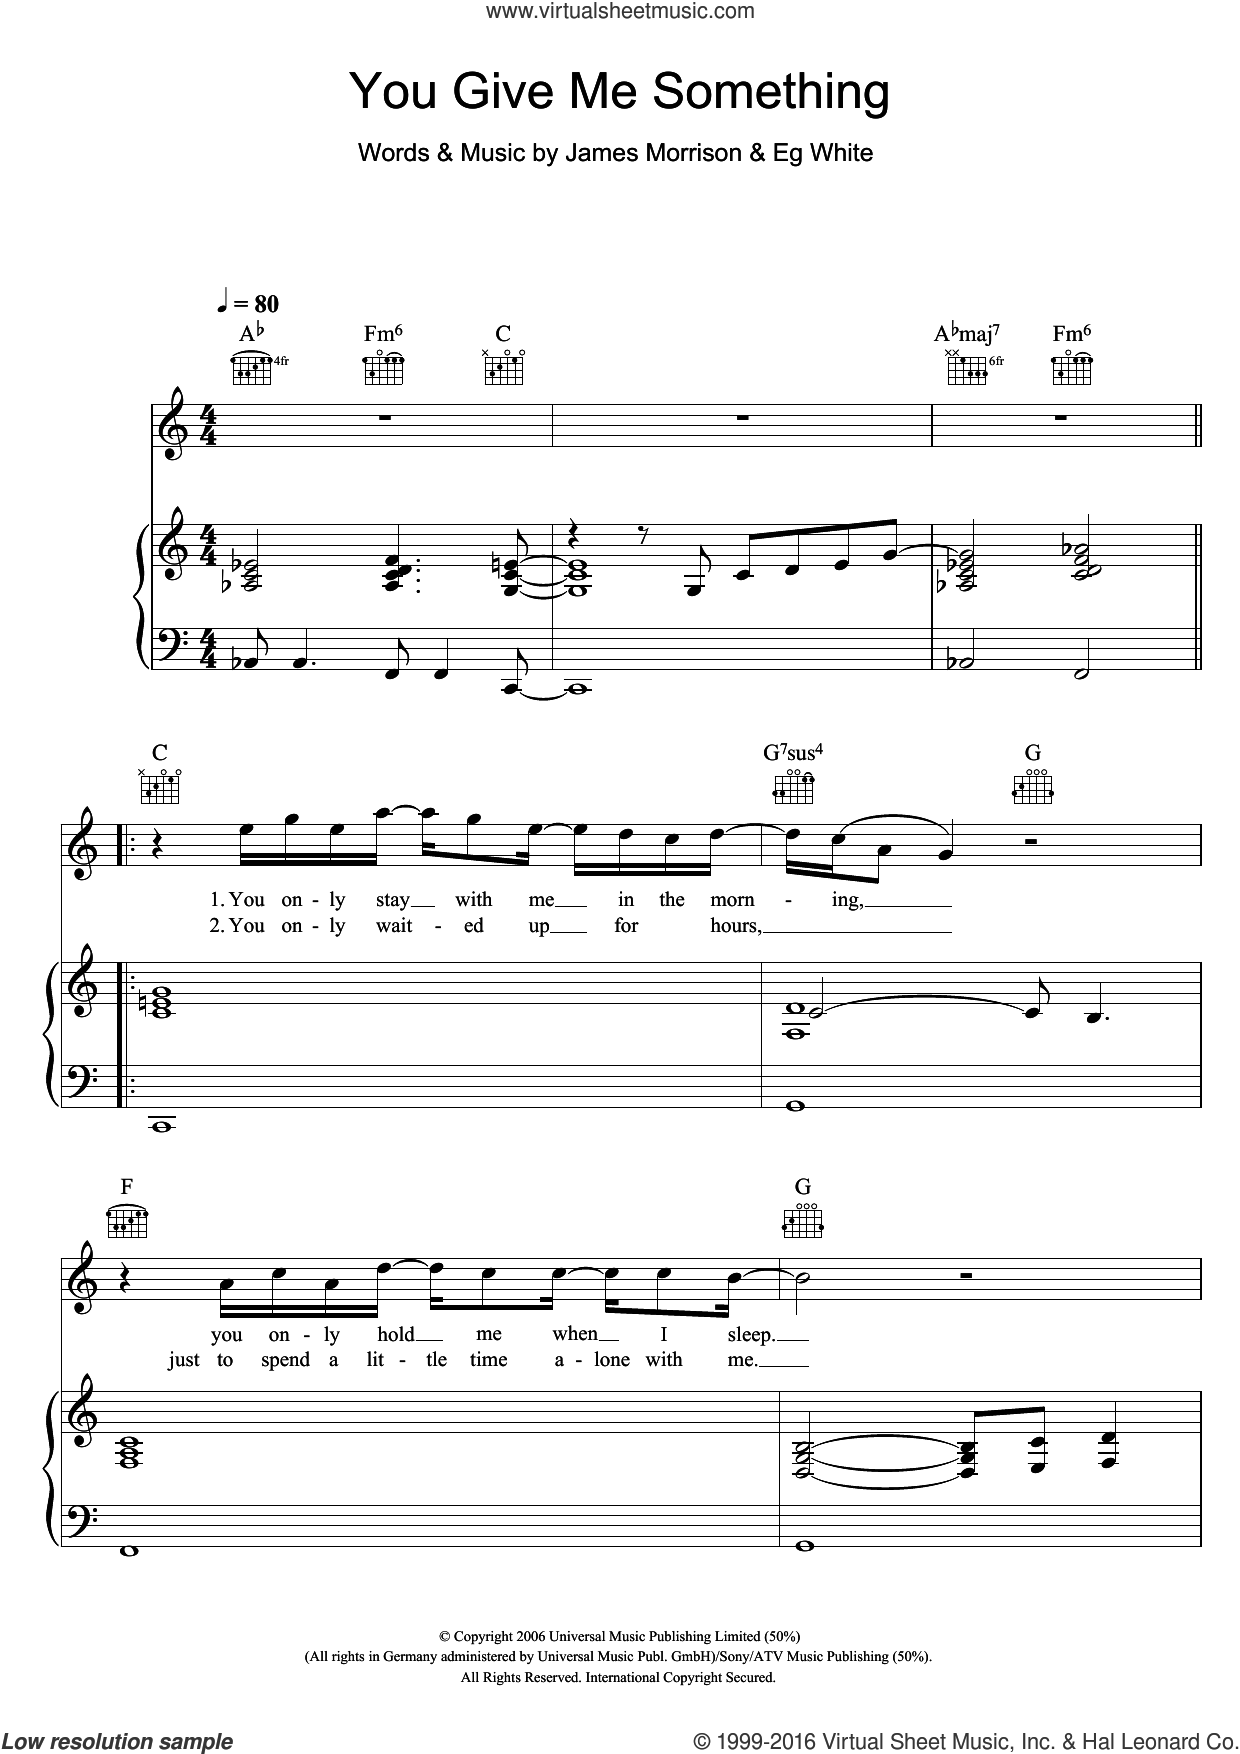 You Give Me Something sheet music for voice, piano or guitar by James Morrison and Eg White, intermediate skill level